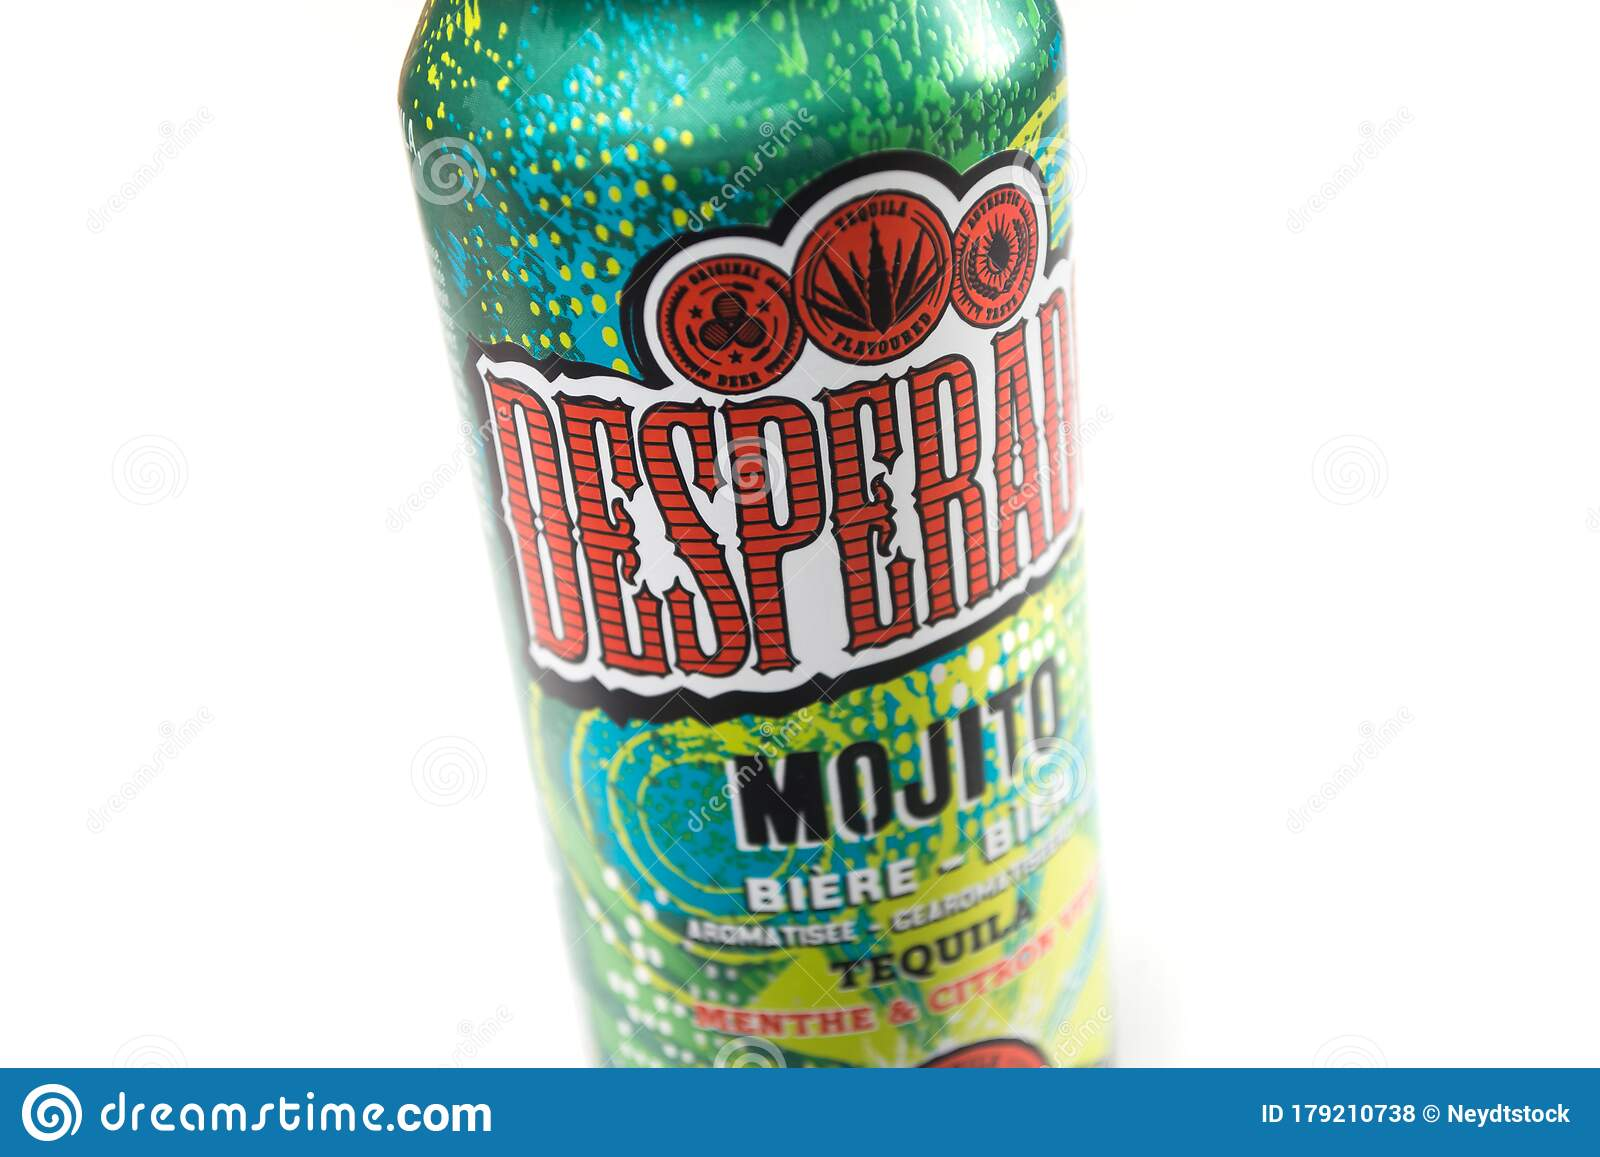 Desperados Beer Flavored Mojito Cocktail In A Metallic Can On White Background Editorial Stock Photo Image Of Bottles Bier 179210738